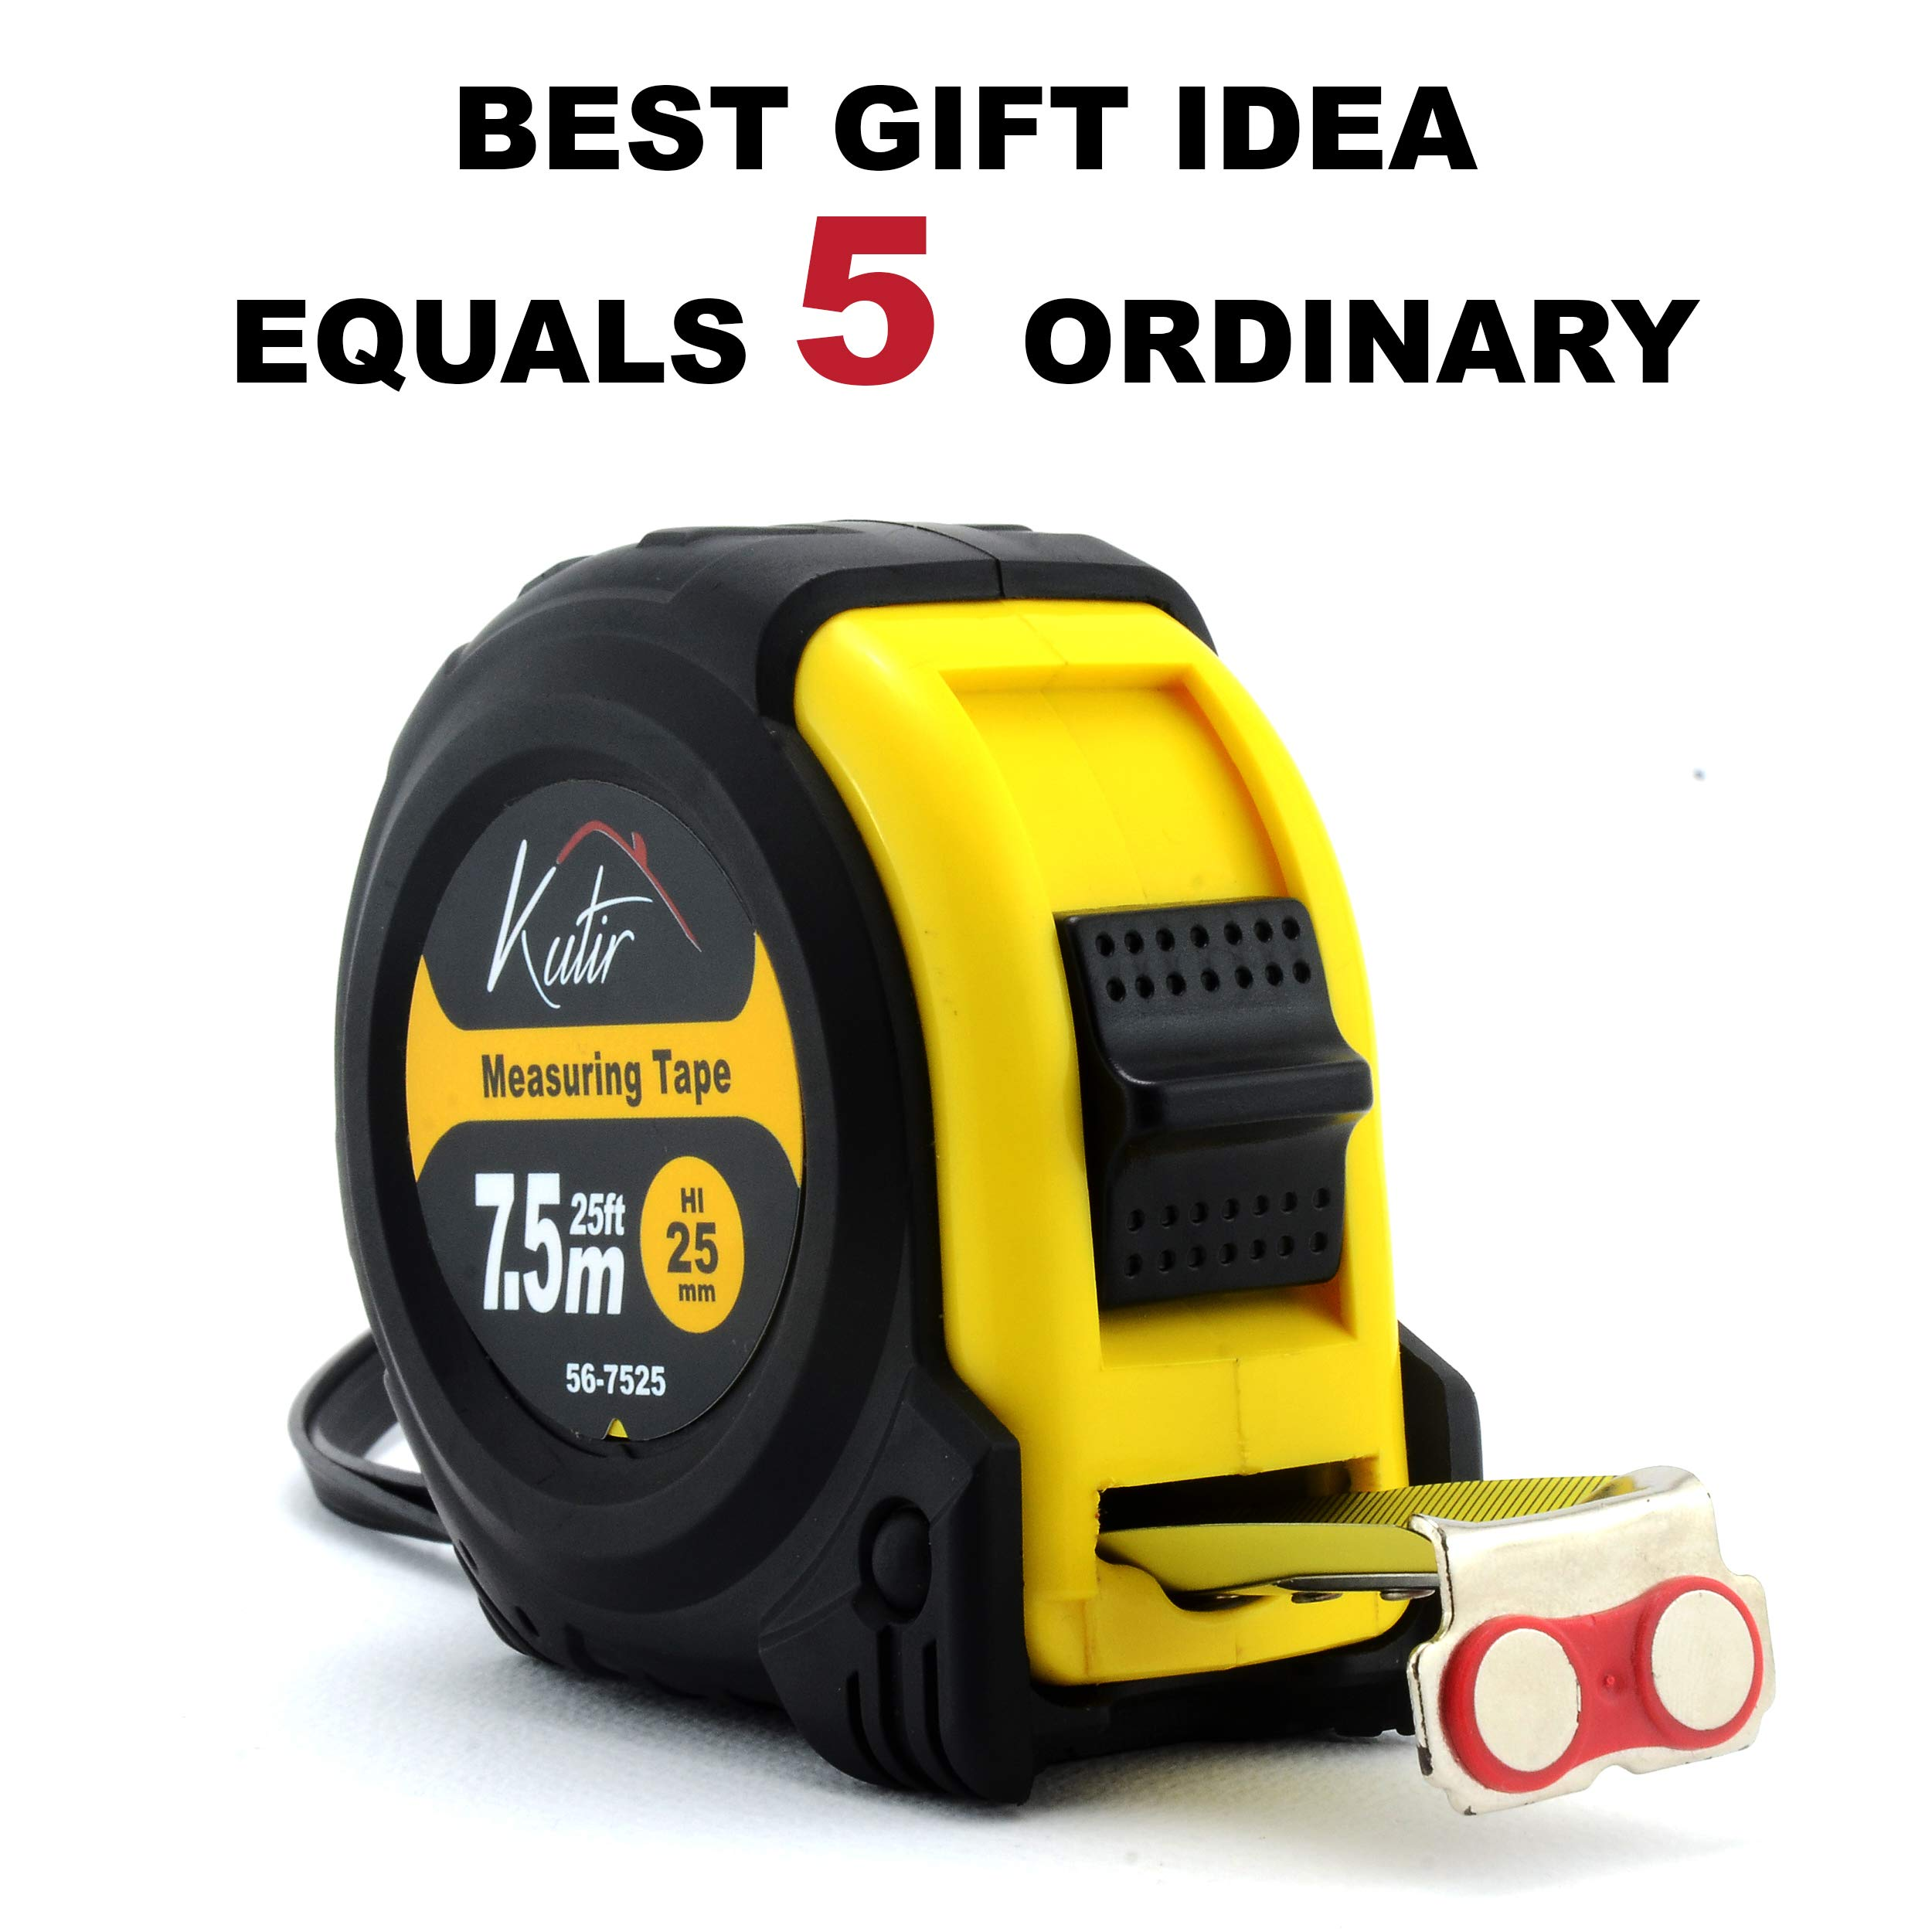 Measuring Tape Measure By Kutir - EASY TO READ 25 Foot BOTH SIDE DUAL RULER, Retractable, STURDY, Heavy Duty, MAGNETIC HOOK, Metric, Inches and Imperial Measurement, SHOCK ABSORBENT Solid Rubber Case by Kutir (Image #7)